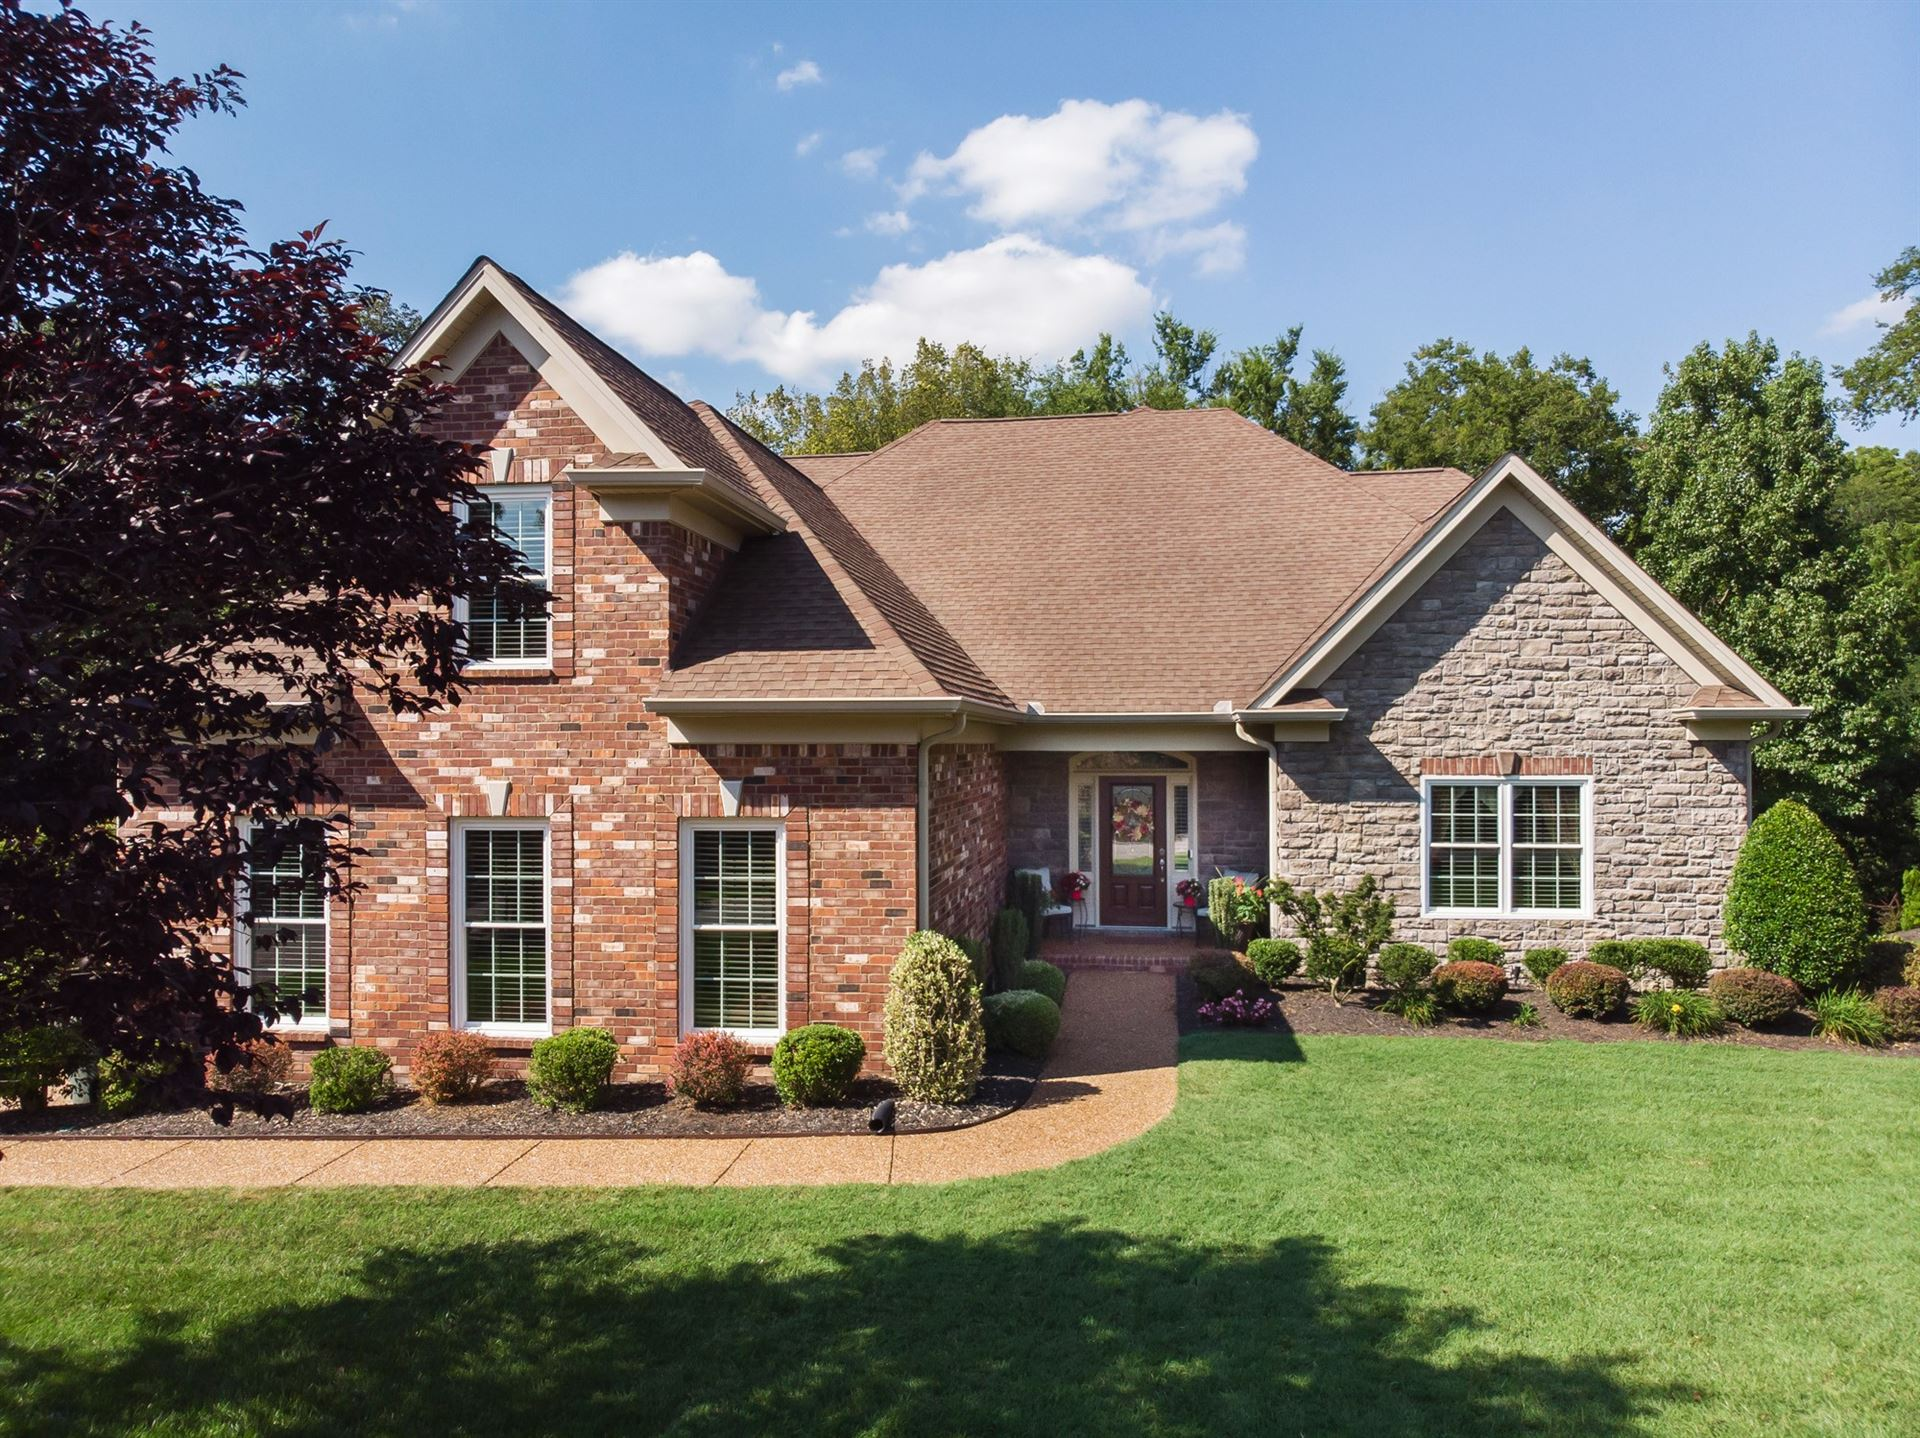 1306 Camelot Bay, Mount Juliet, TN 37122 - MLS#: 2178123